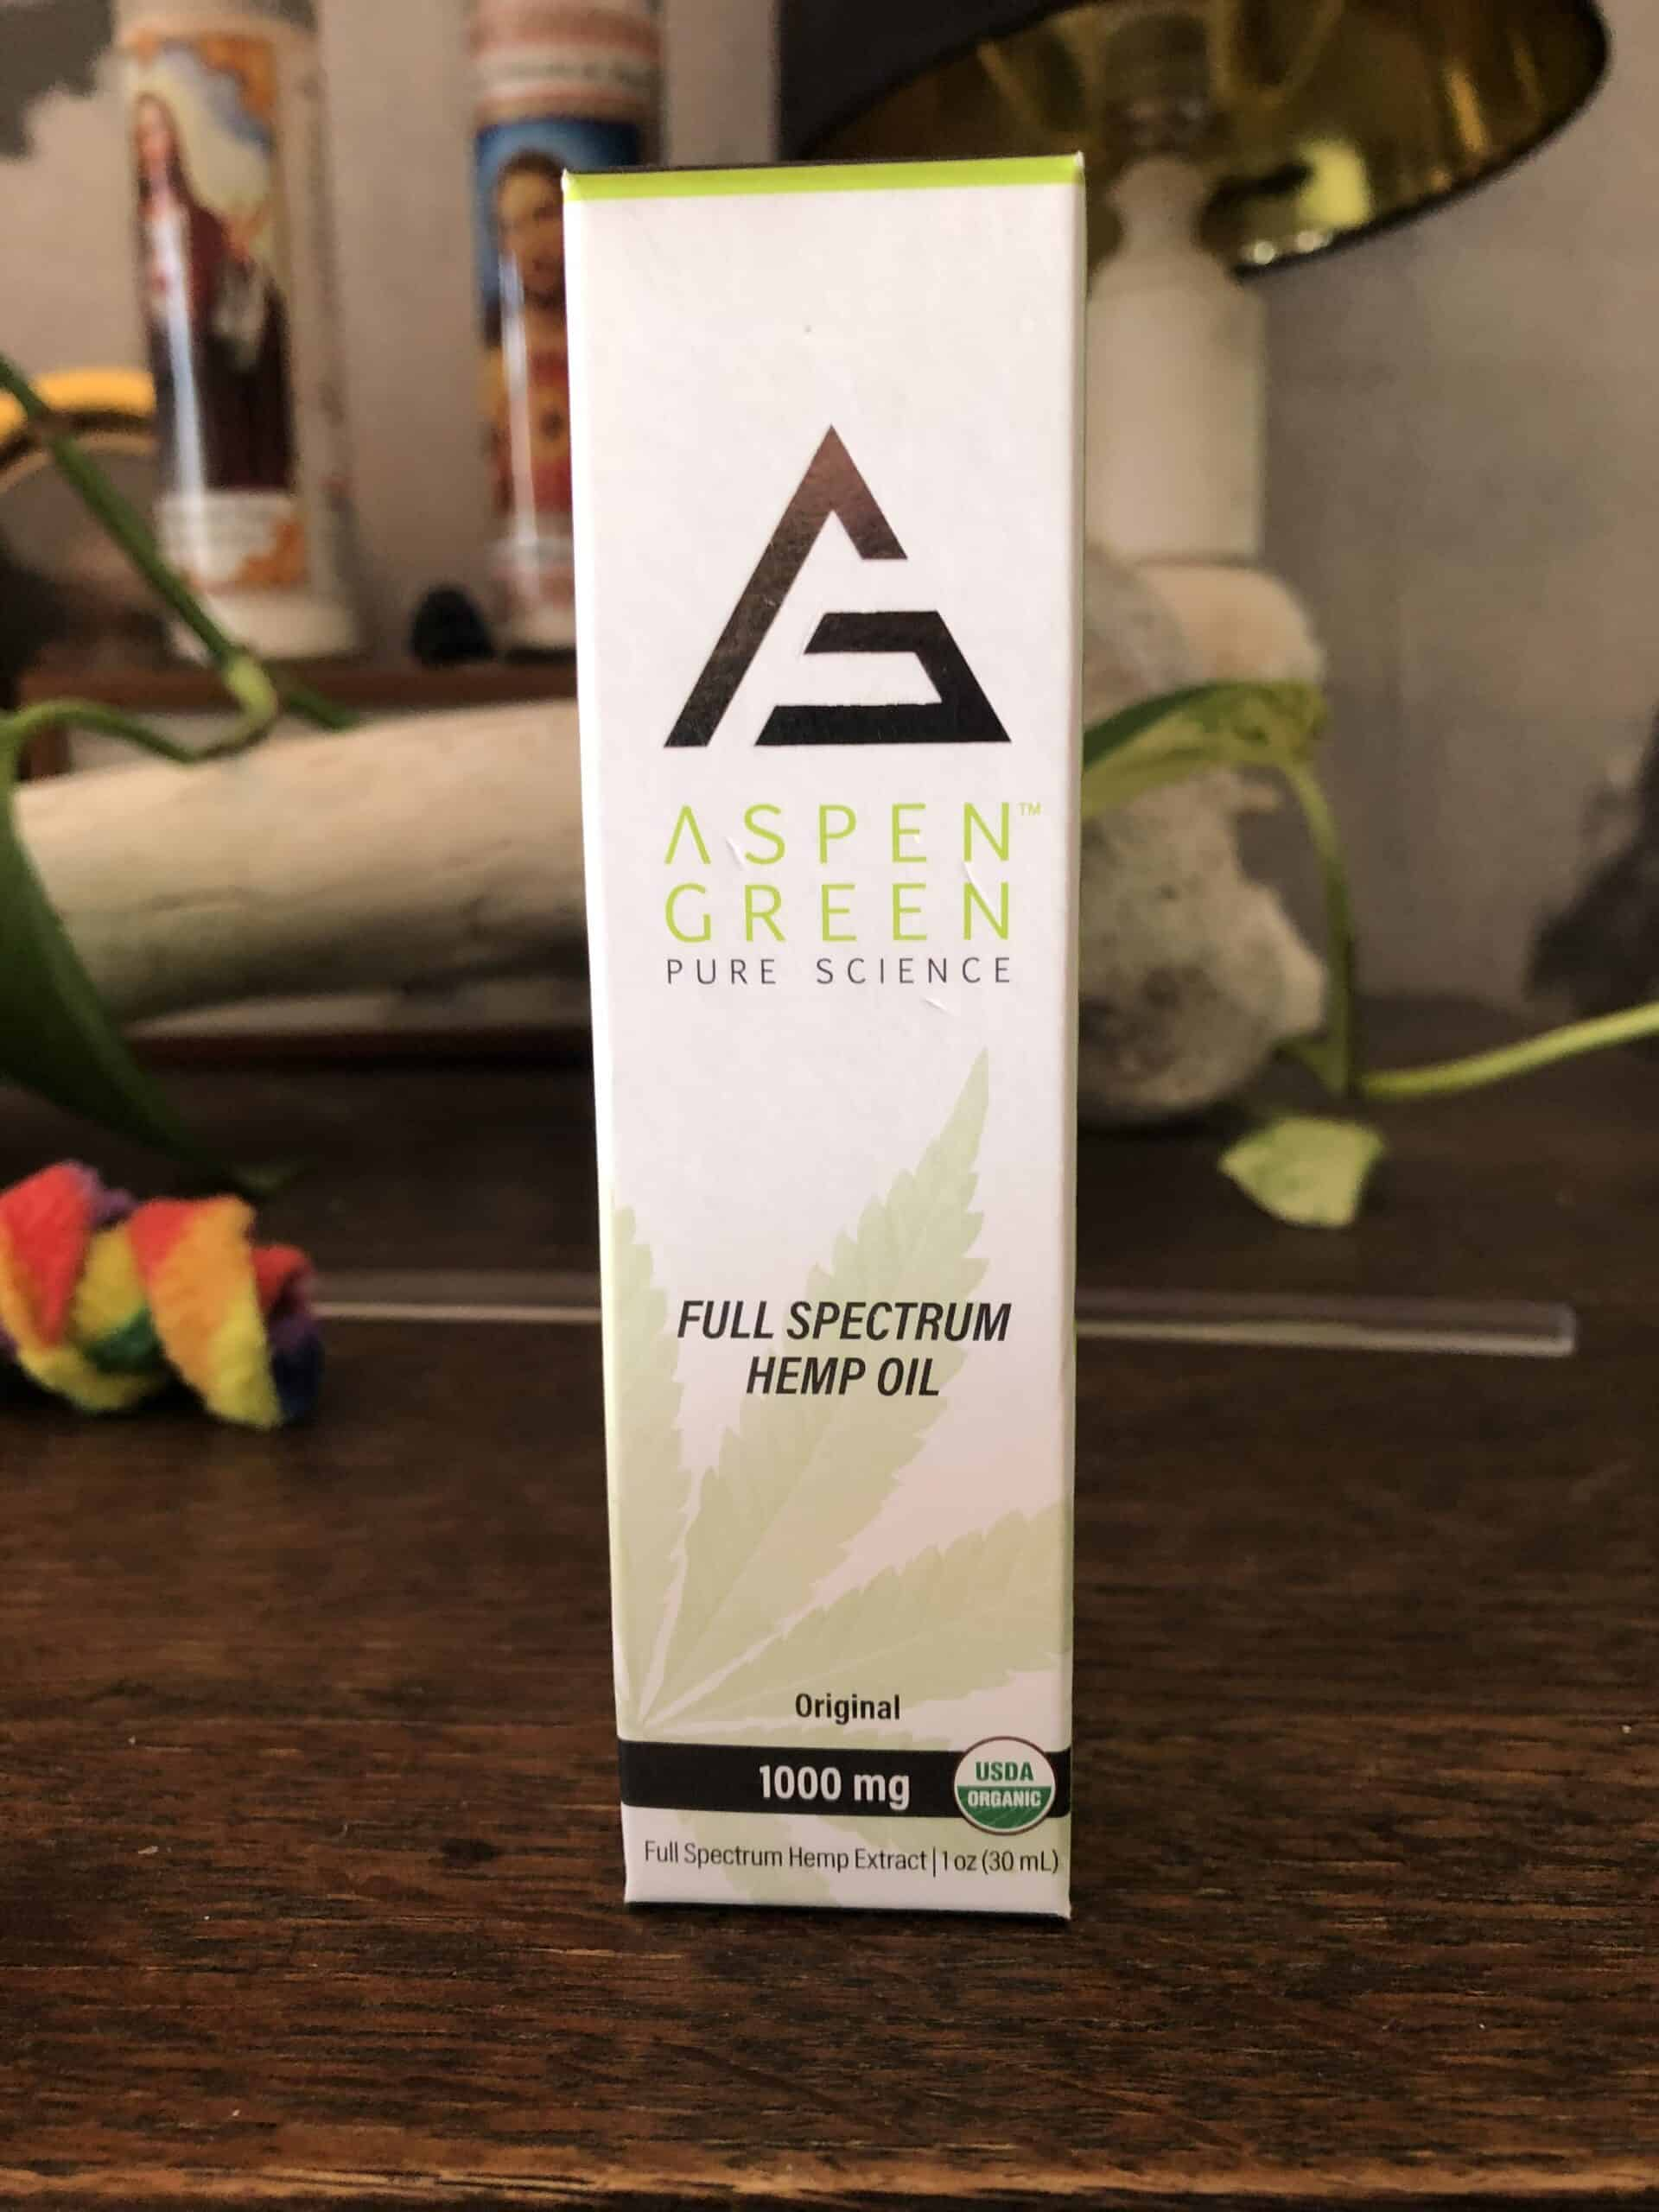 aspen green full spectrum hemp oil 1,000 mg save on cannabis review